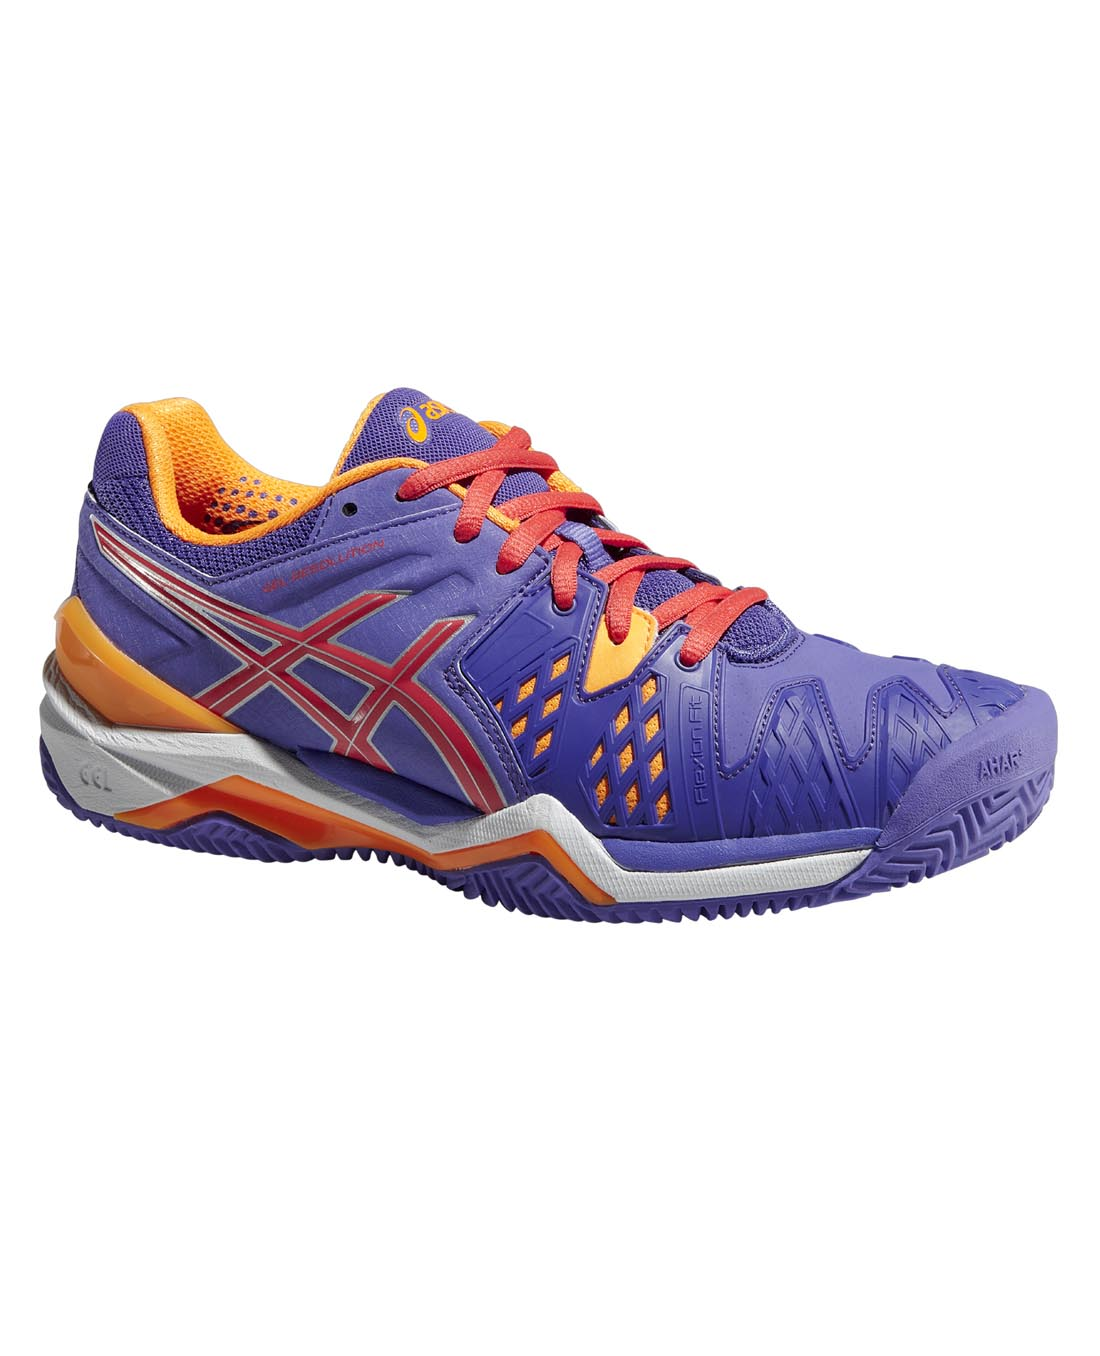 ASICS ZAPATILLAS ASICS GEL-RESOLUTION 6 CLAY